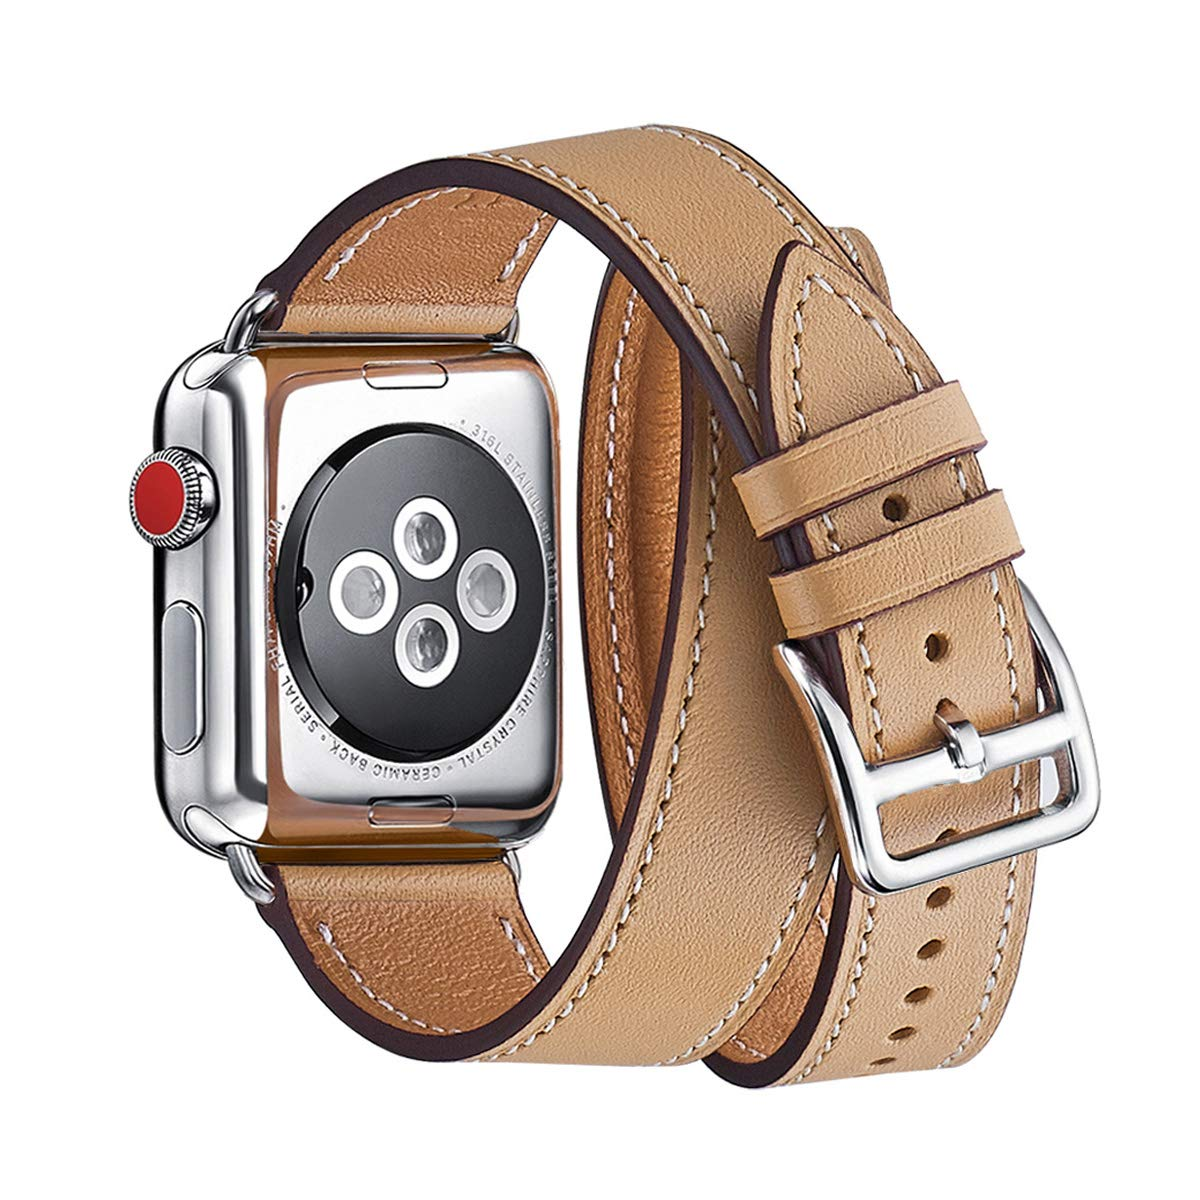 WFEAGL Compatible iWatch Band 42mm 44mm, Top Grain Leather Band with Gold Adapter (The Same as Series 4 with Gold Stainless Steel Case in Color) for iWatch Series 4/3/2/1 (Black Band+Gold Adapter, 42mm 44mm)